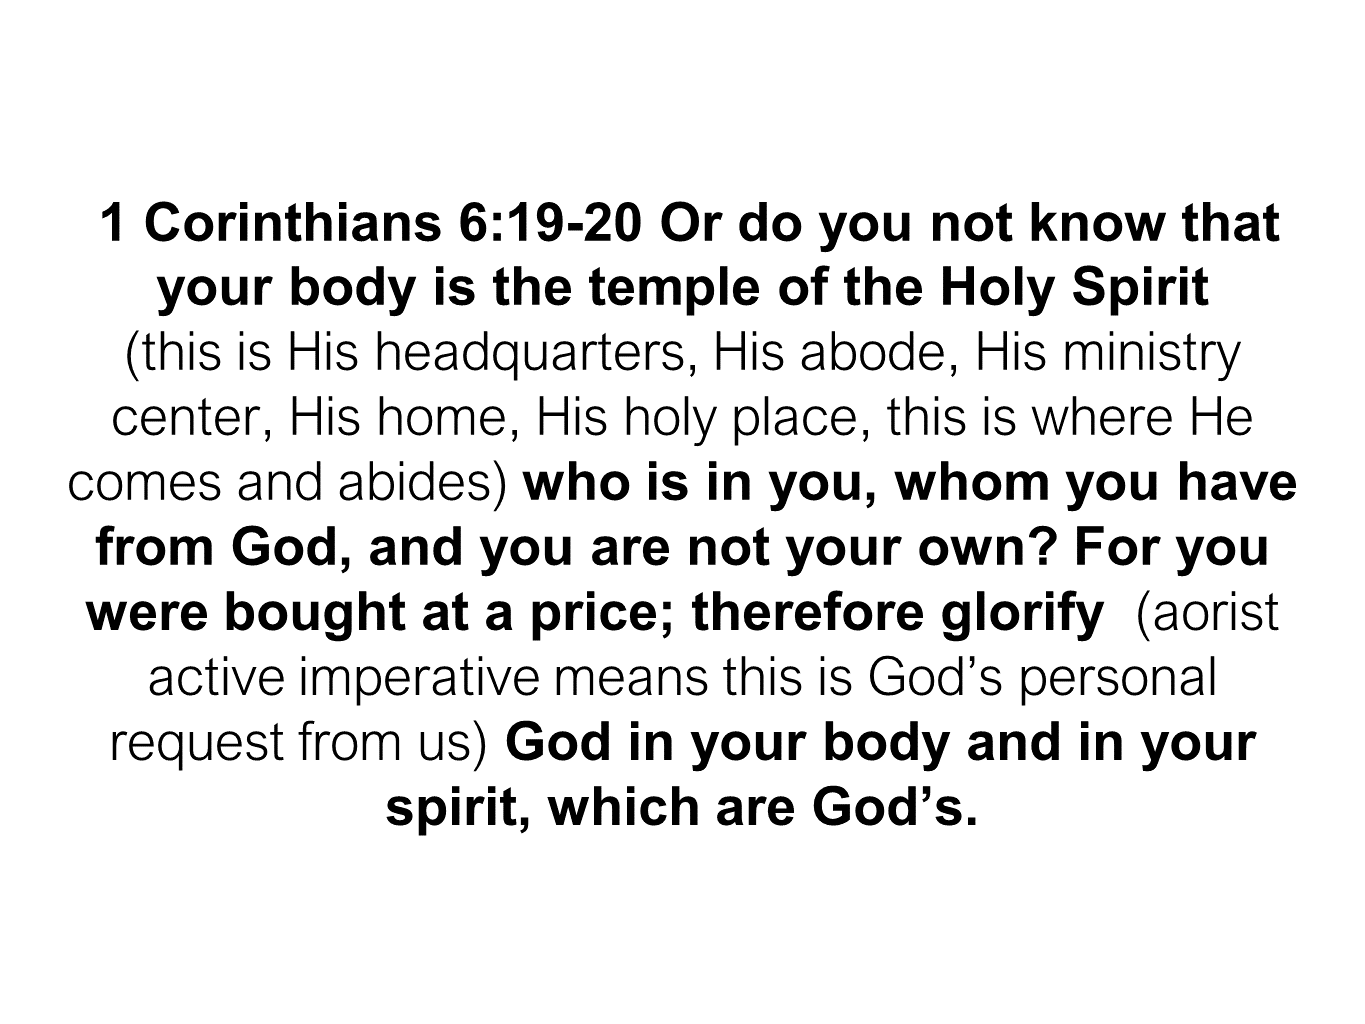 ESH-28 - Discipleship Lesson 4 - The Spirit Of God Teaching Them About The Source Of An Endl (15)